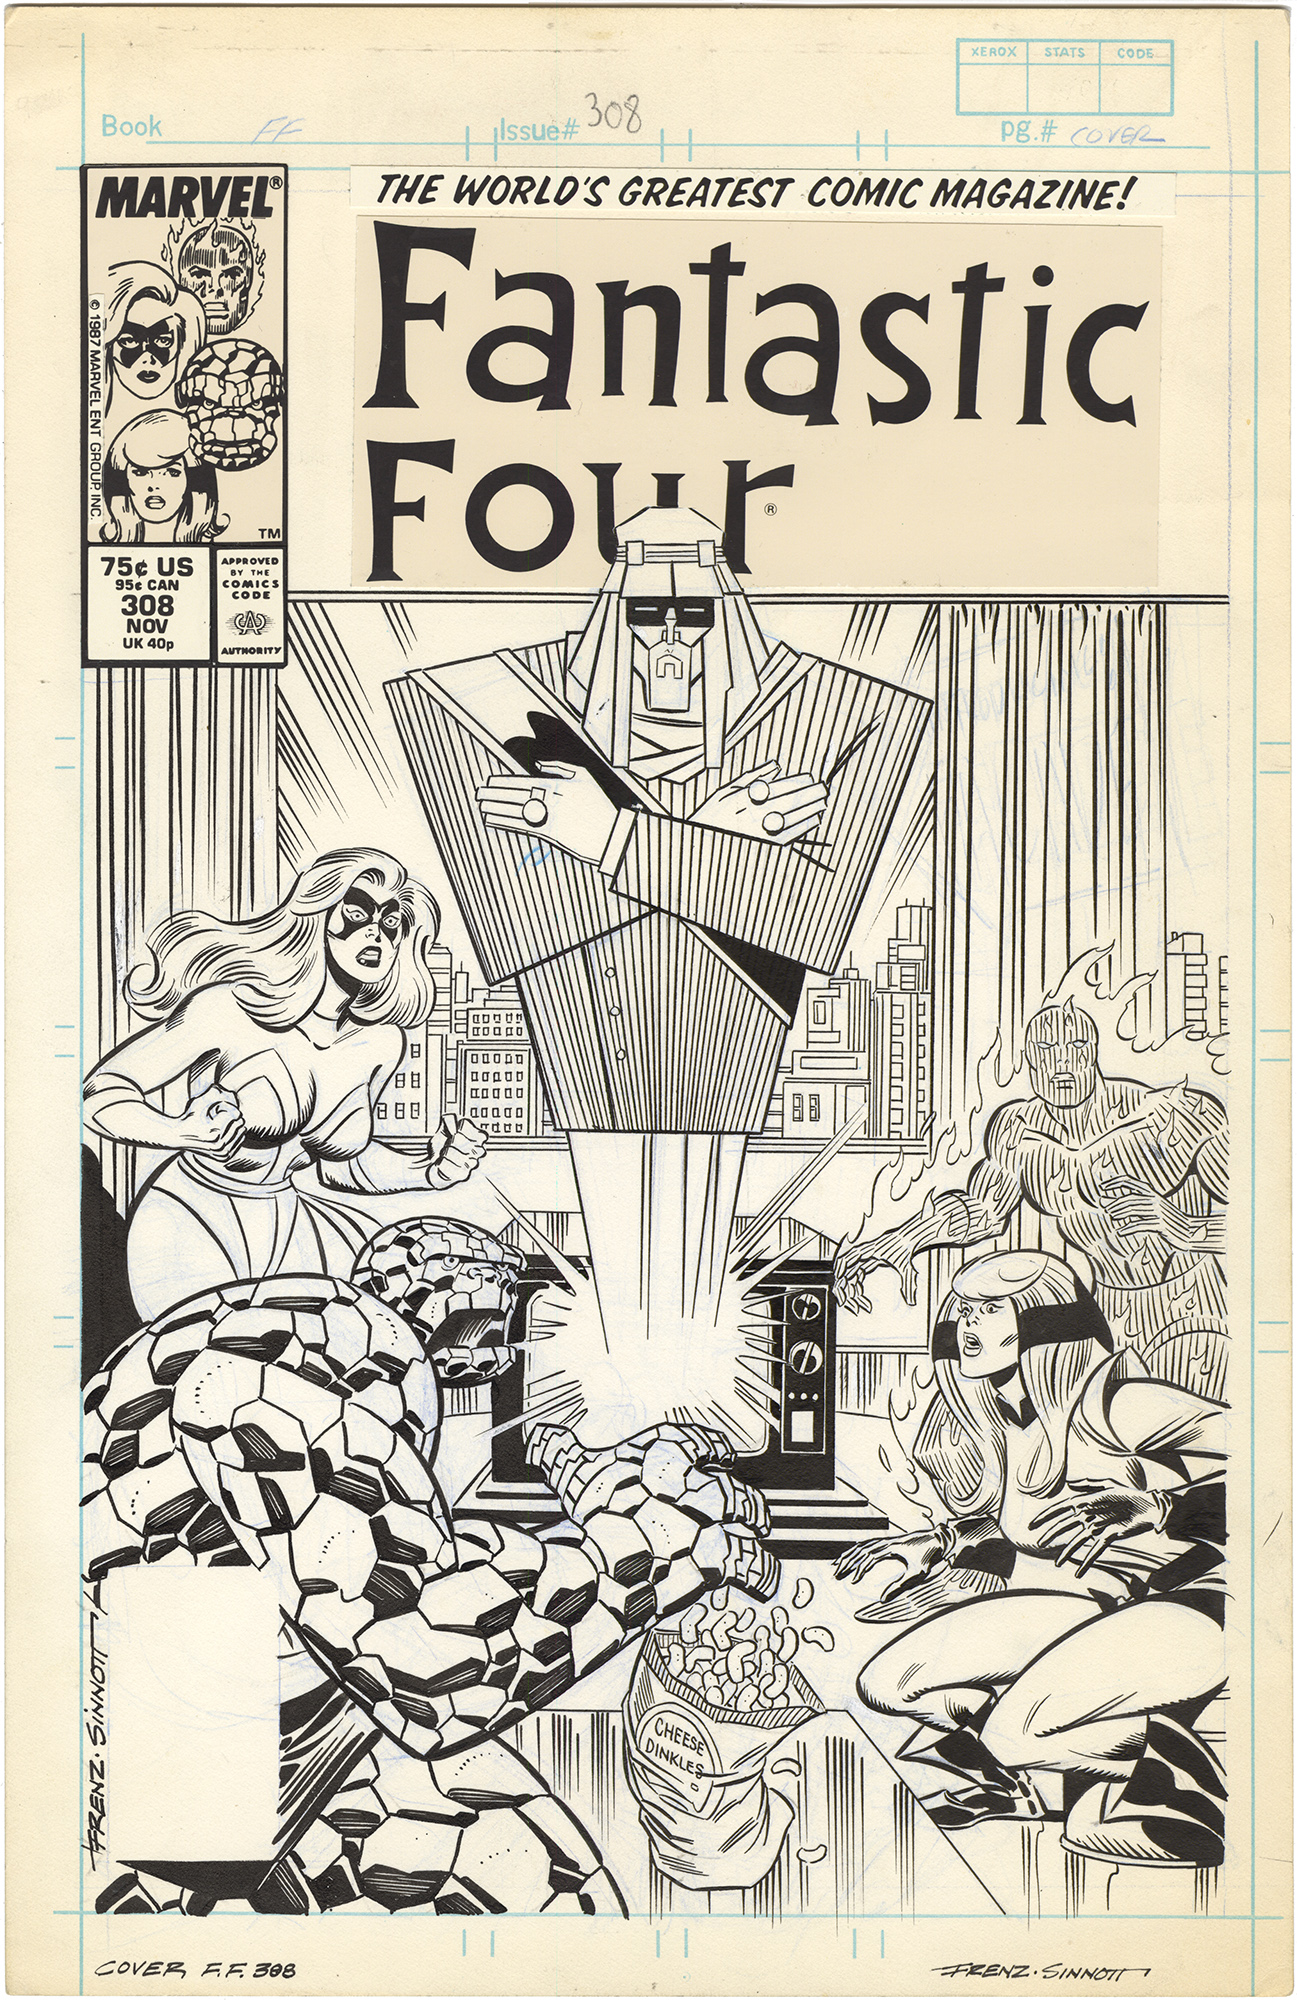 Fantastic Four #308 Cover